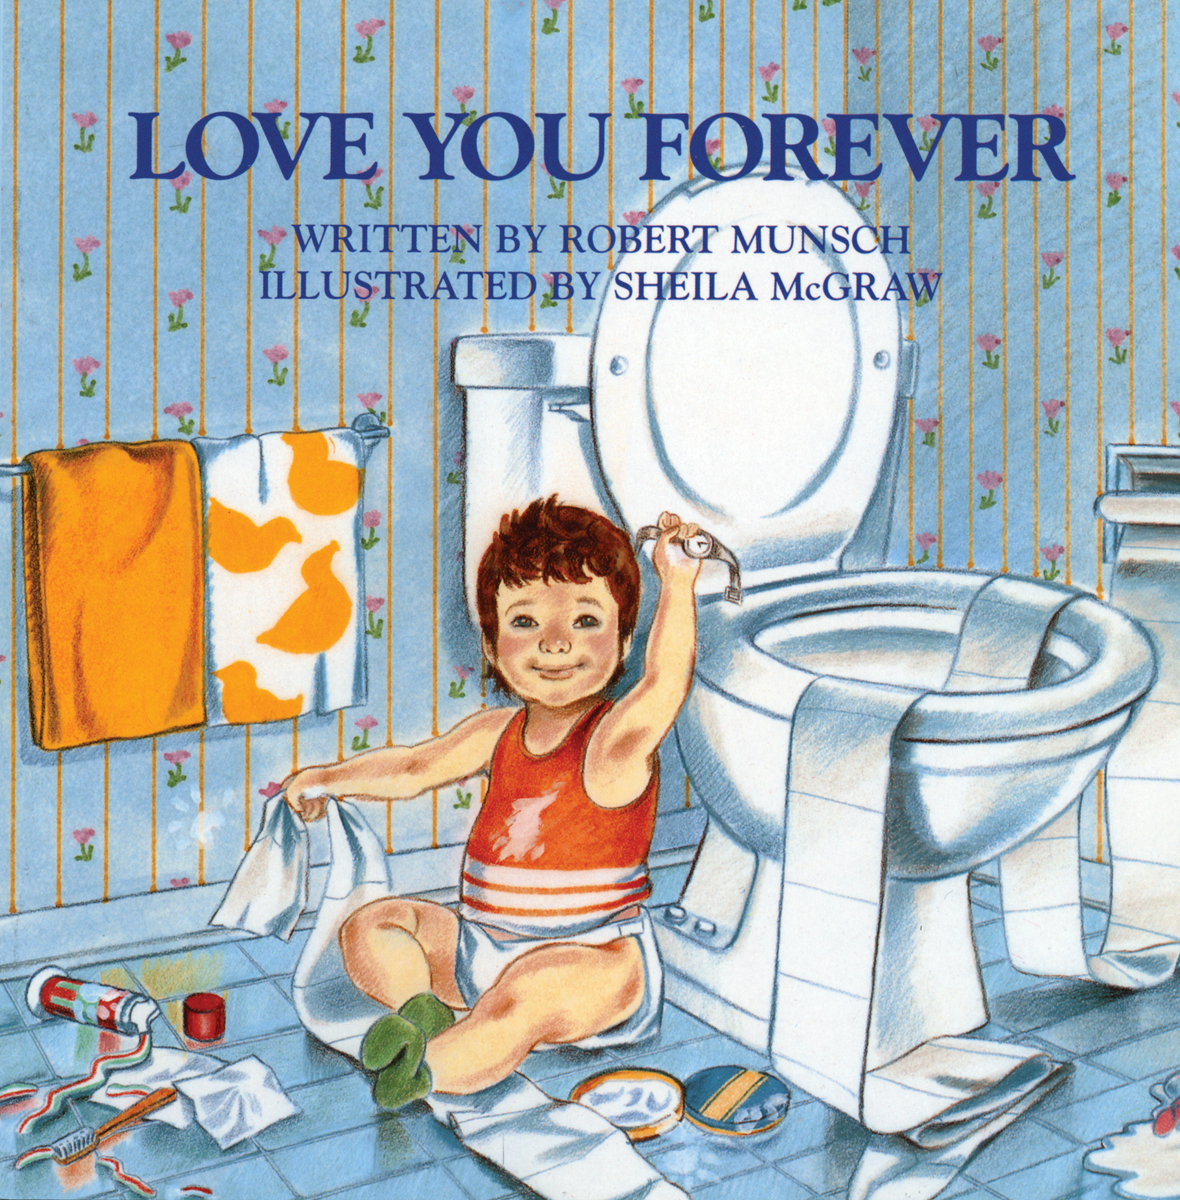 Love You Forever by Robert Munsch, illustrated by Sheila McGraw